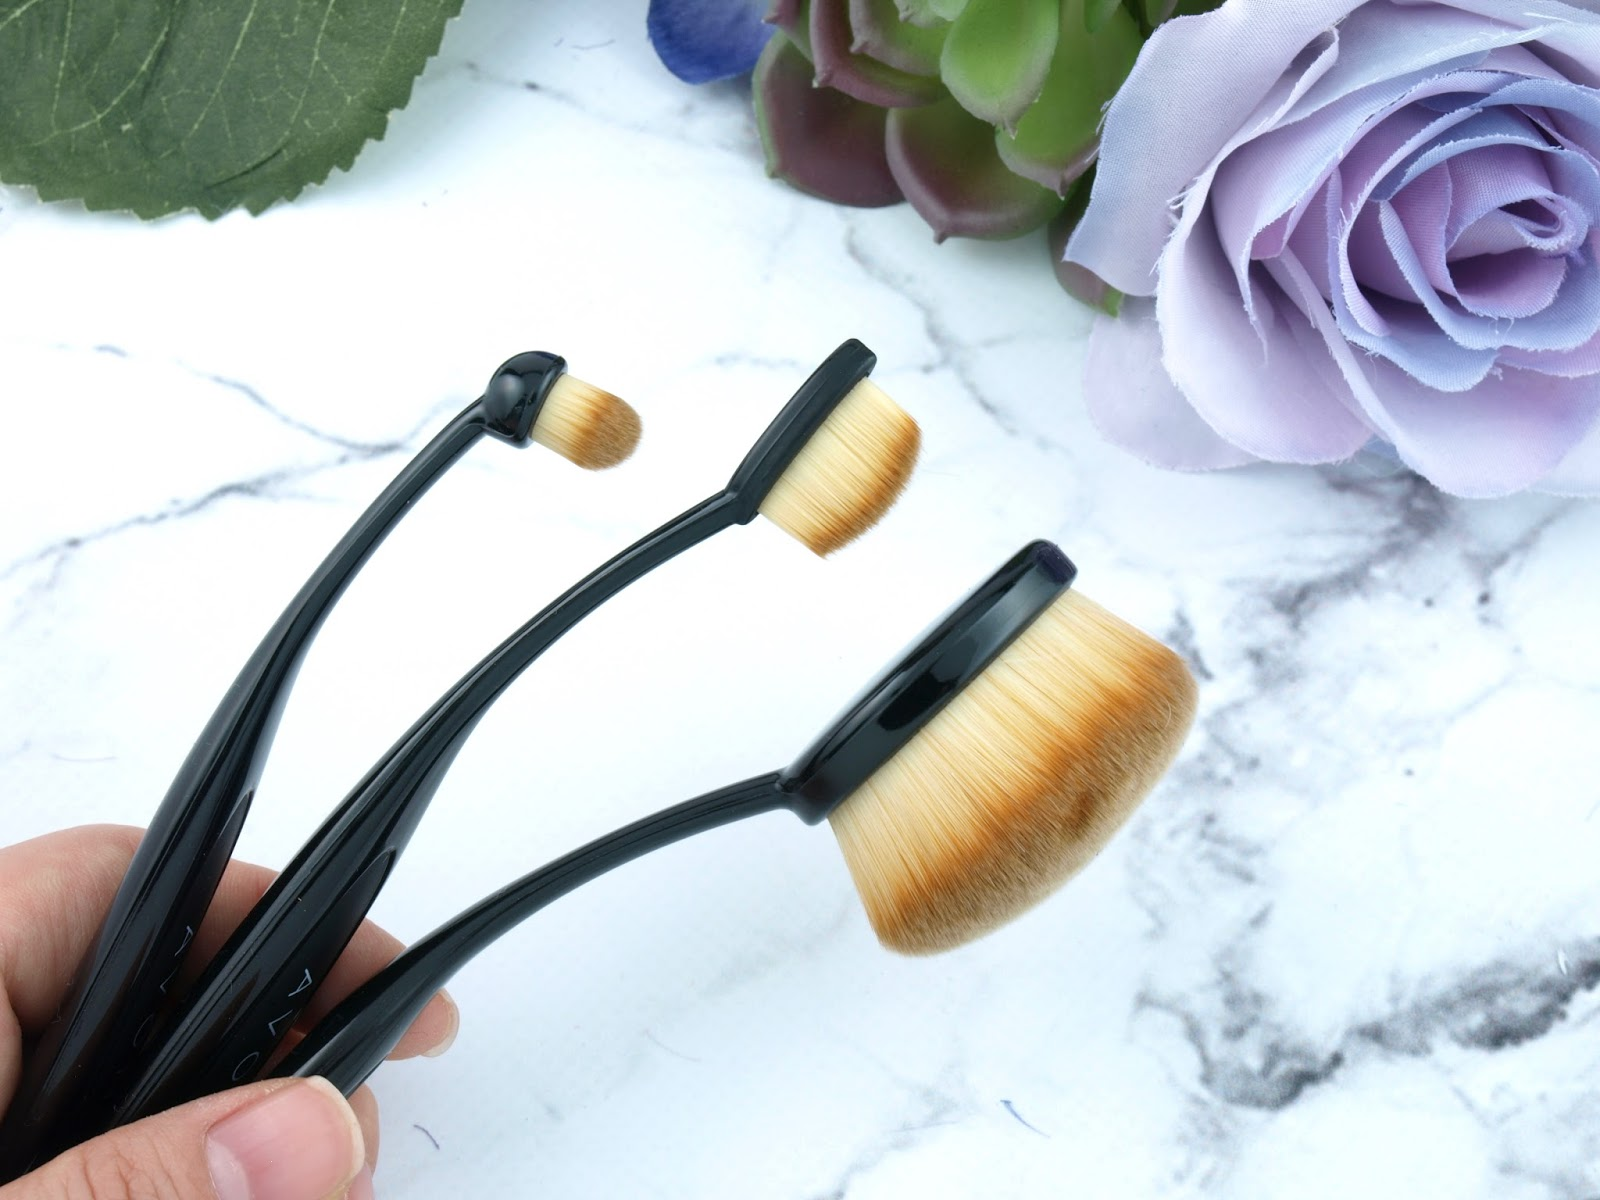 Avon Oval Makeup Brushes: Review